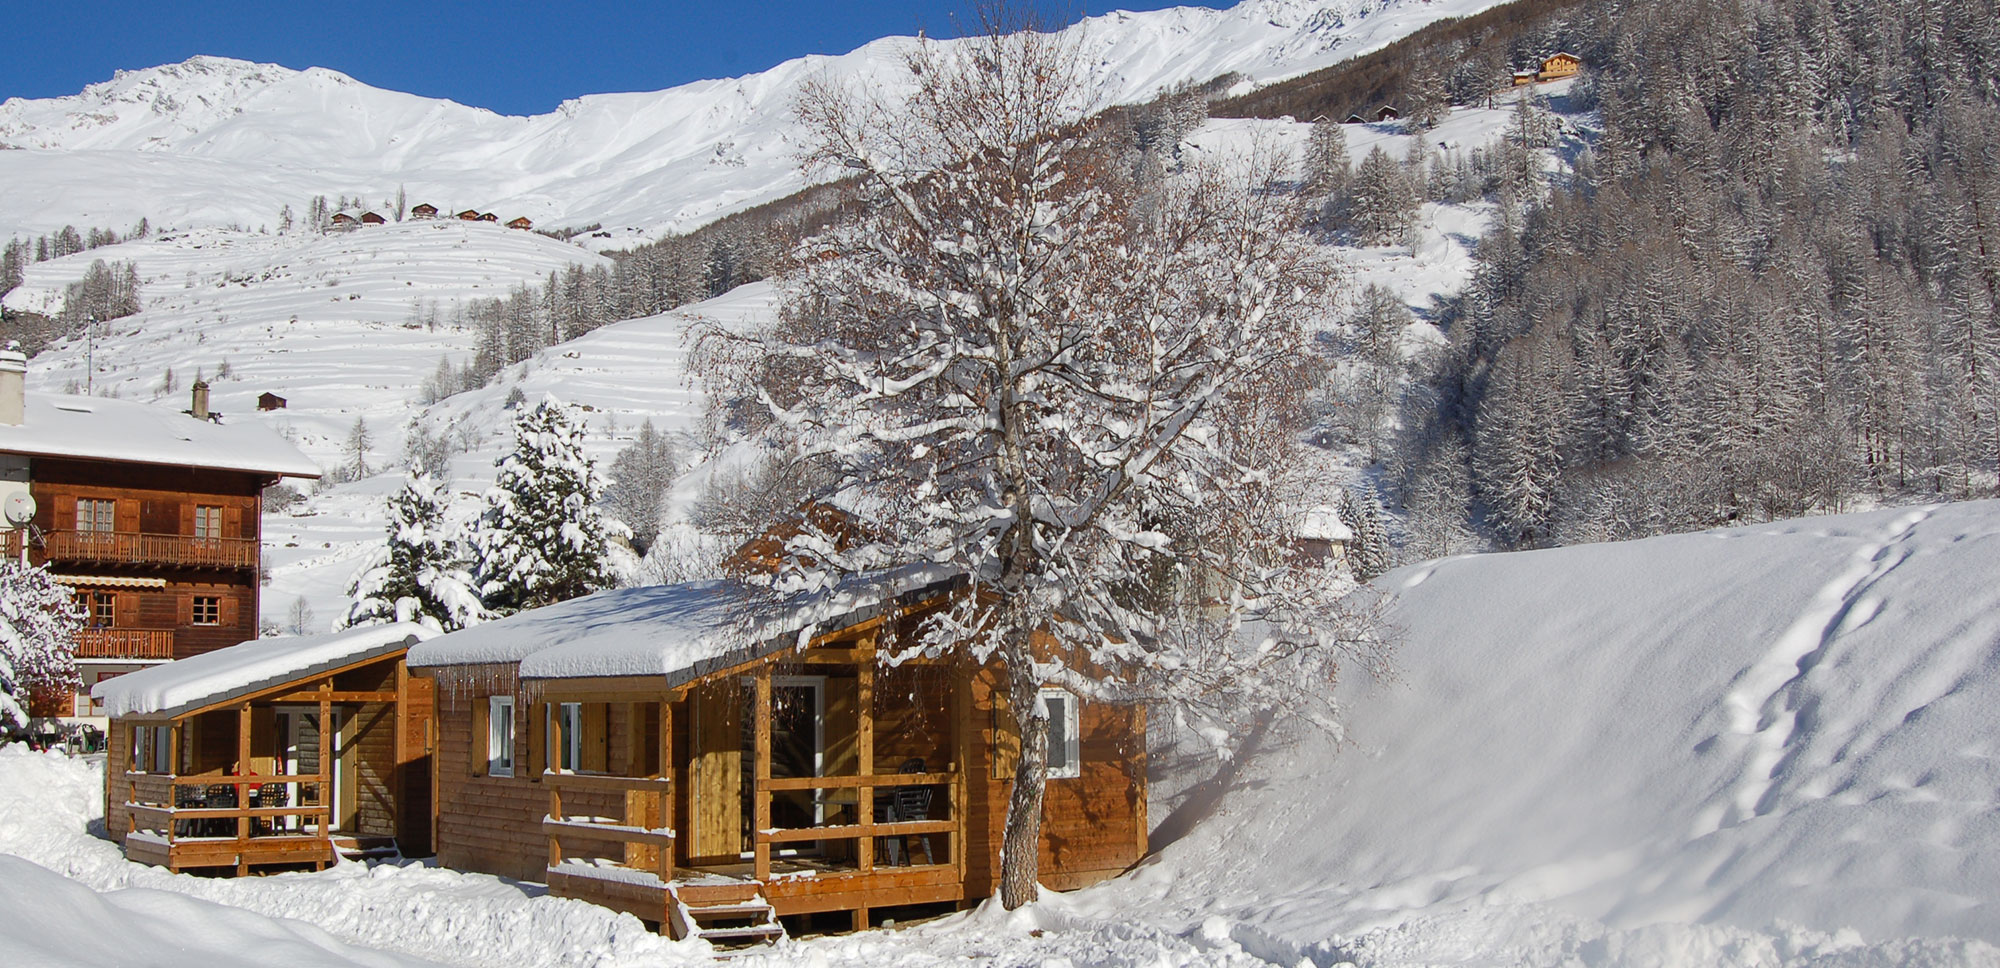 Camping montagne hiver